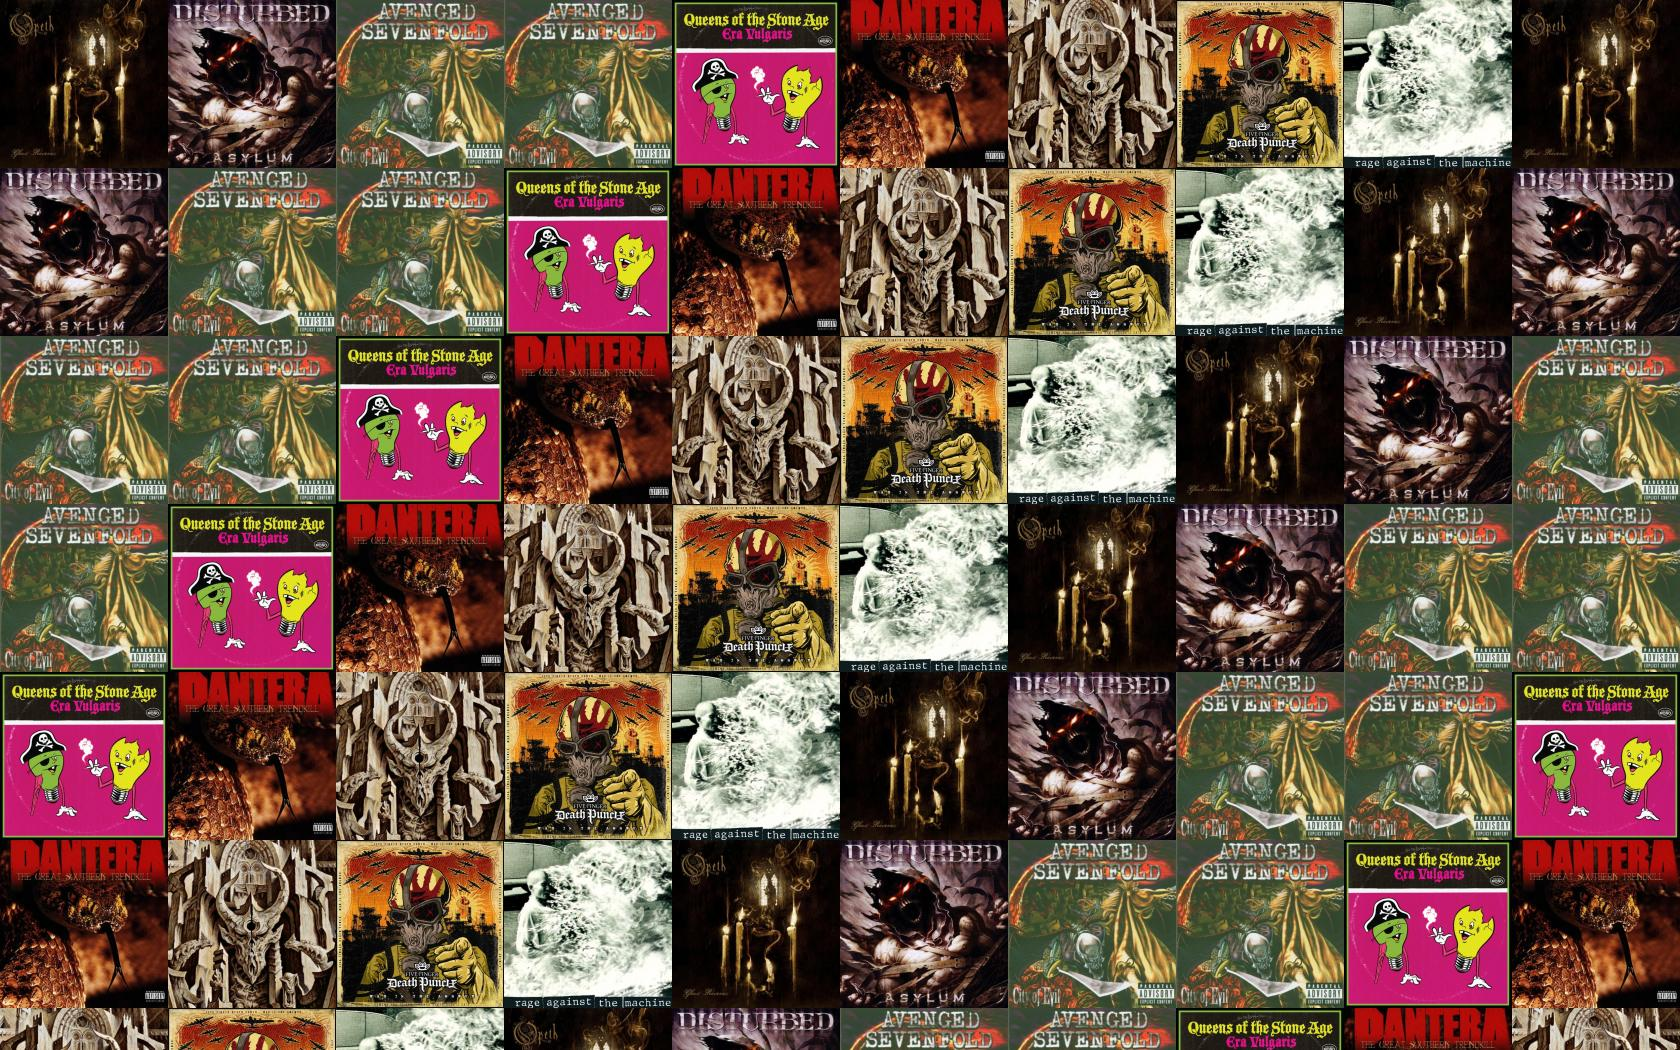 Opeth ghost reveries disturbed asylum avenged sevenfold city opeth ghost reveries disturbed asylum avenged sevenfold city wallpaper tiled desktop wallpaper voltagebd Image collections